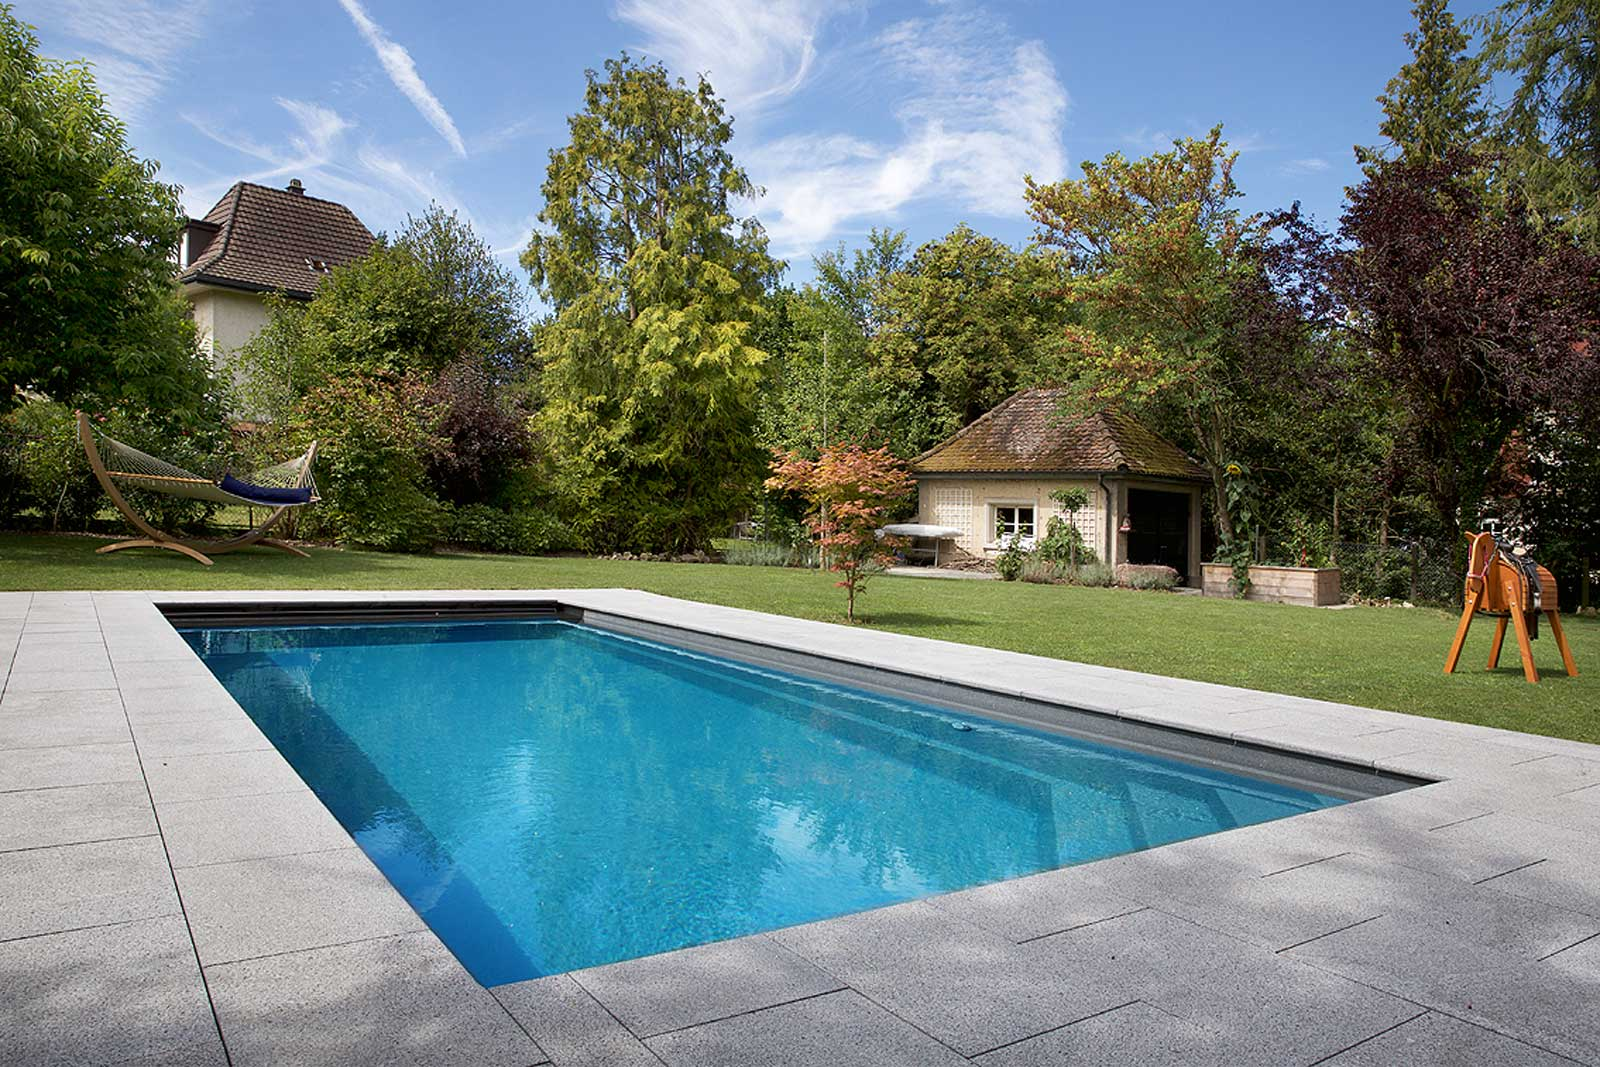 Swimming pools and garden design by Vita Bad AG, Switzerland